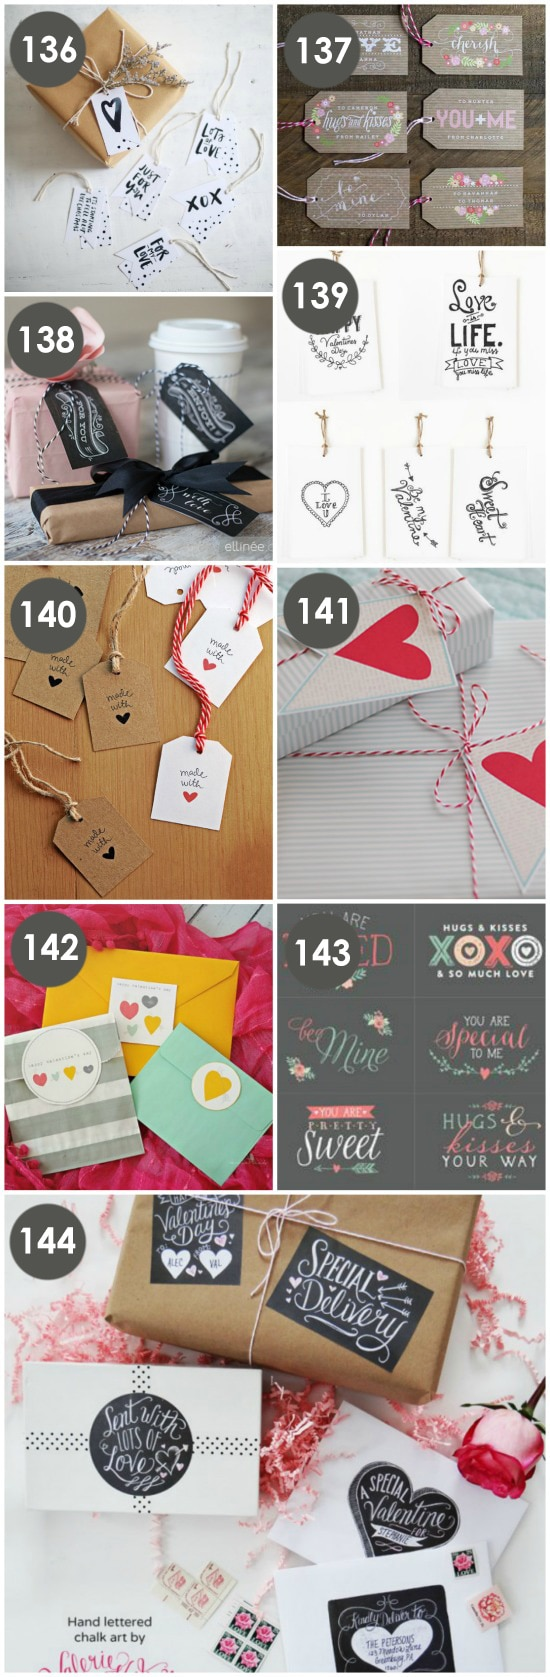 Free Printable Valentine Gift Tags collage